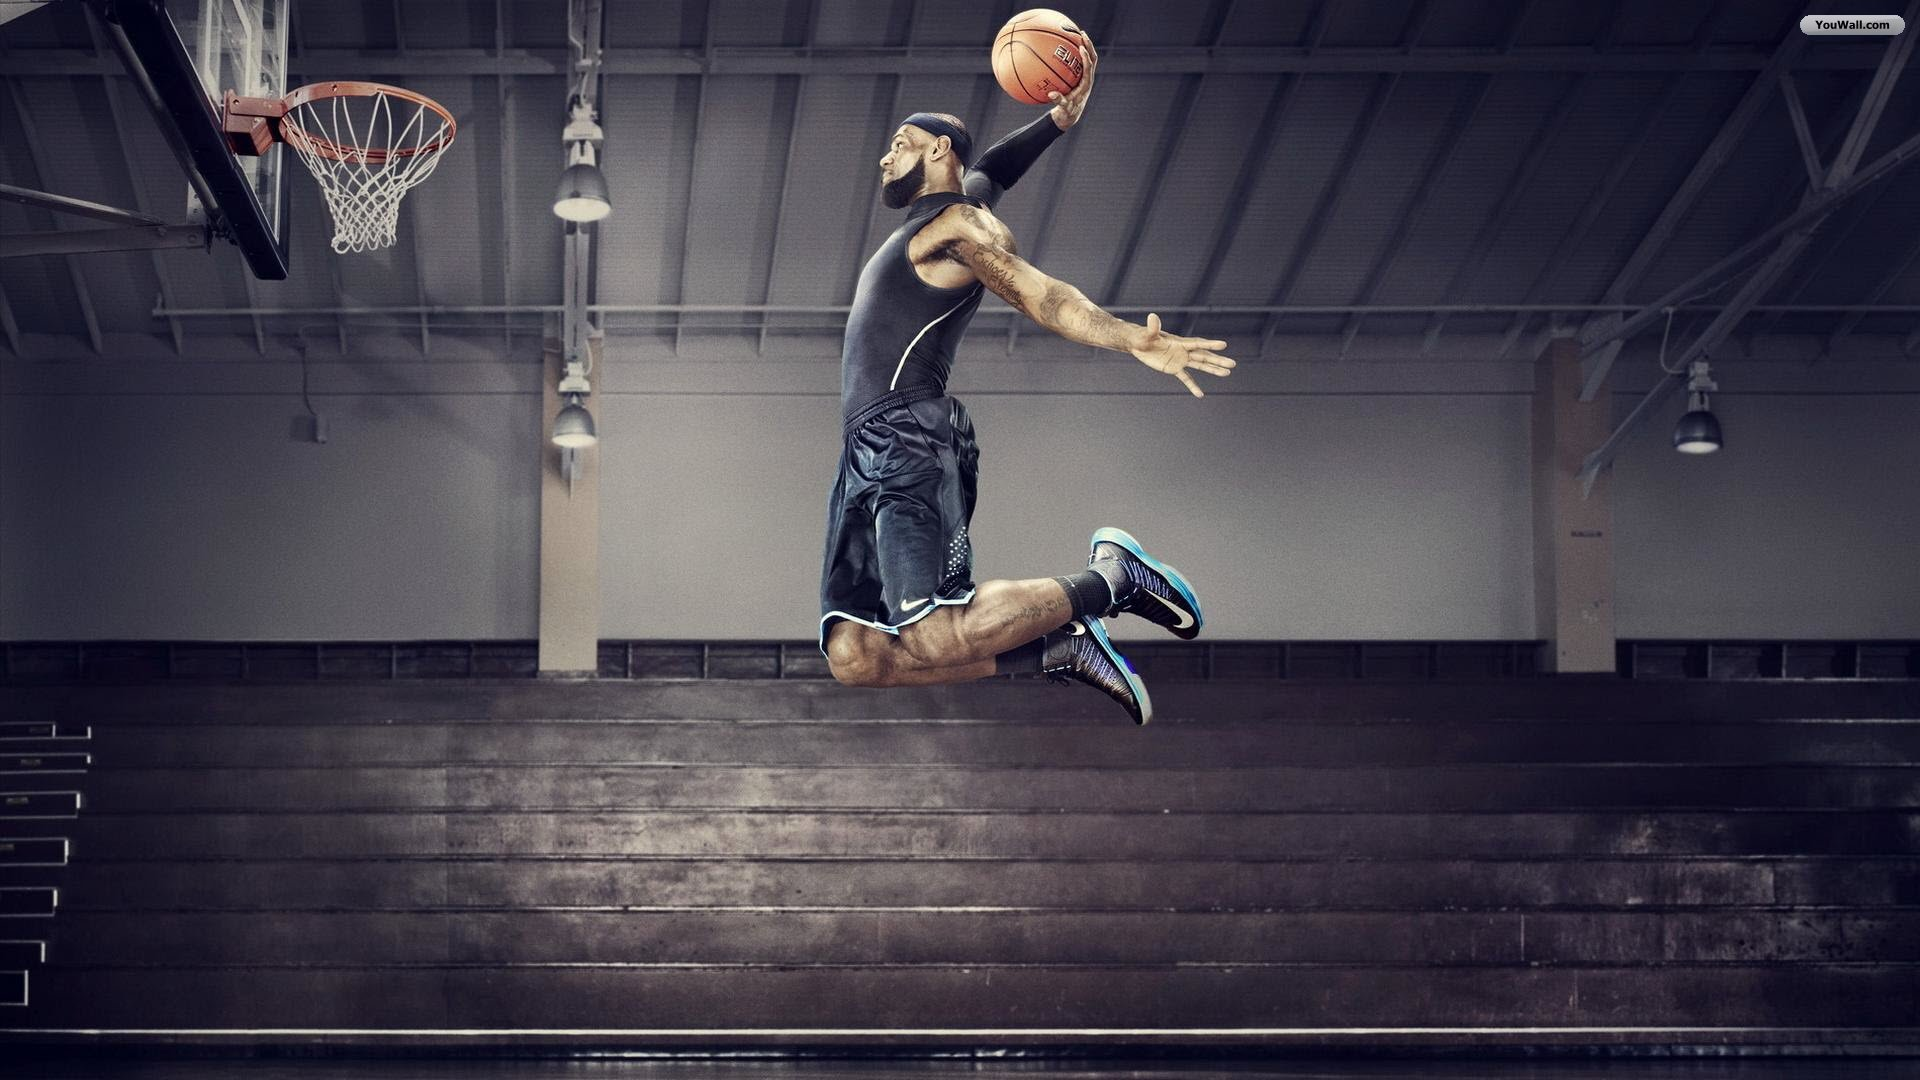 basketball-players-hd-wallpapers-25